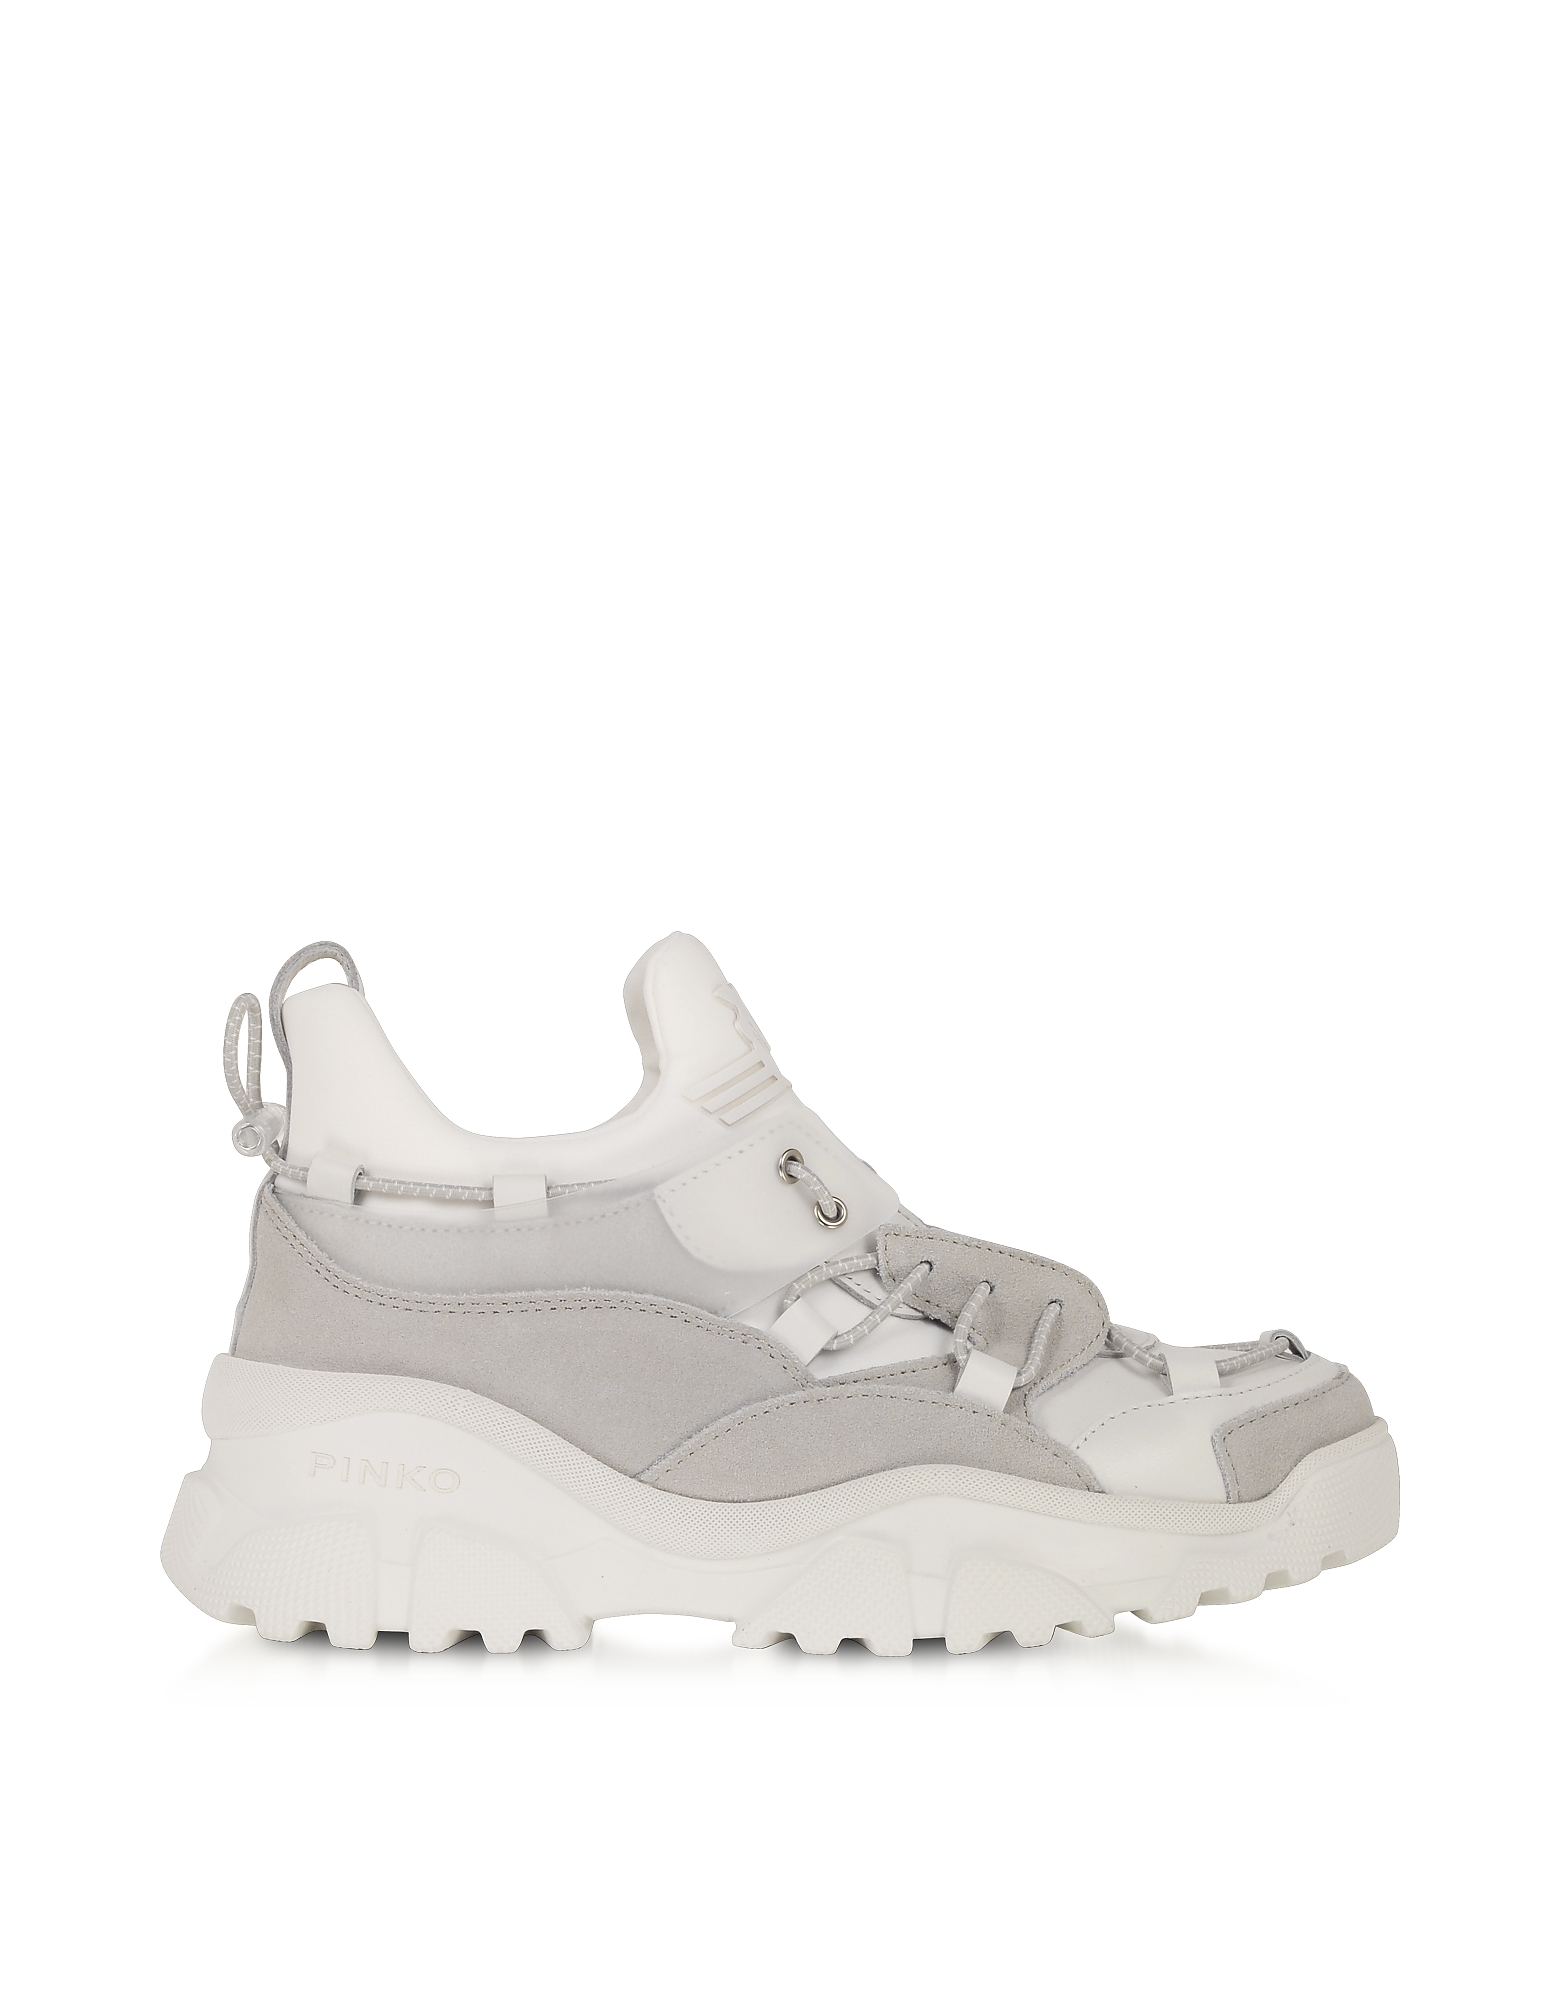 Pinko Designer Shoes, Cumino White Leather Women's Sneakers